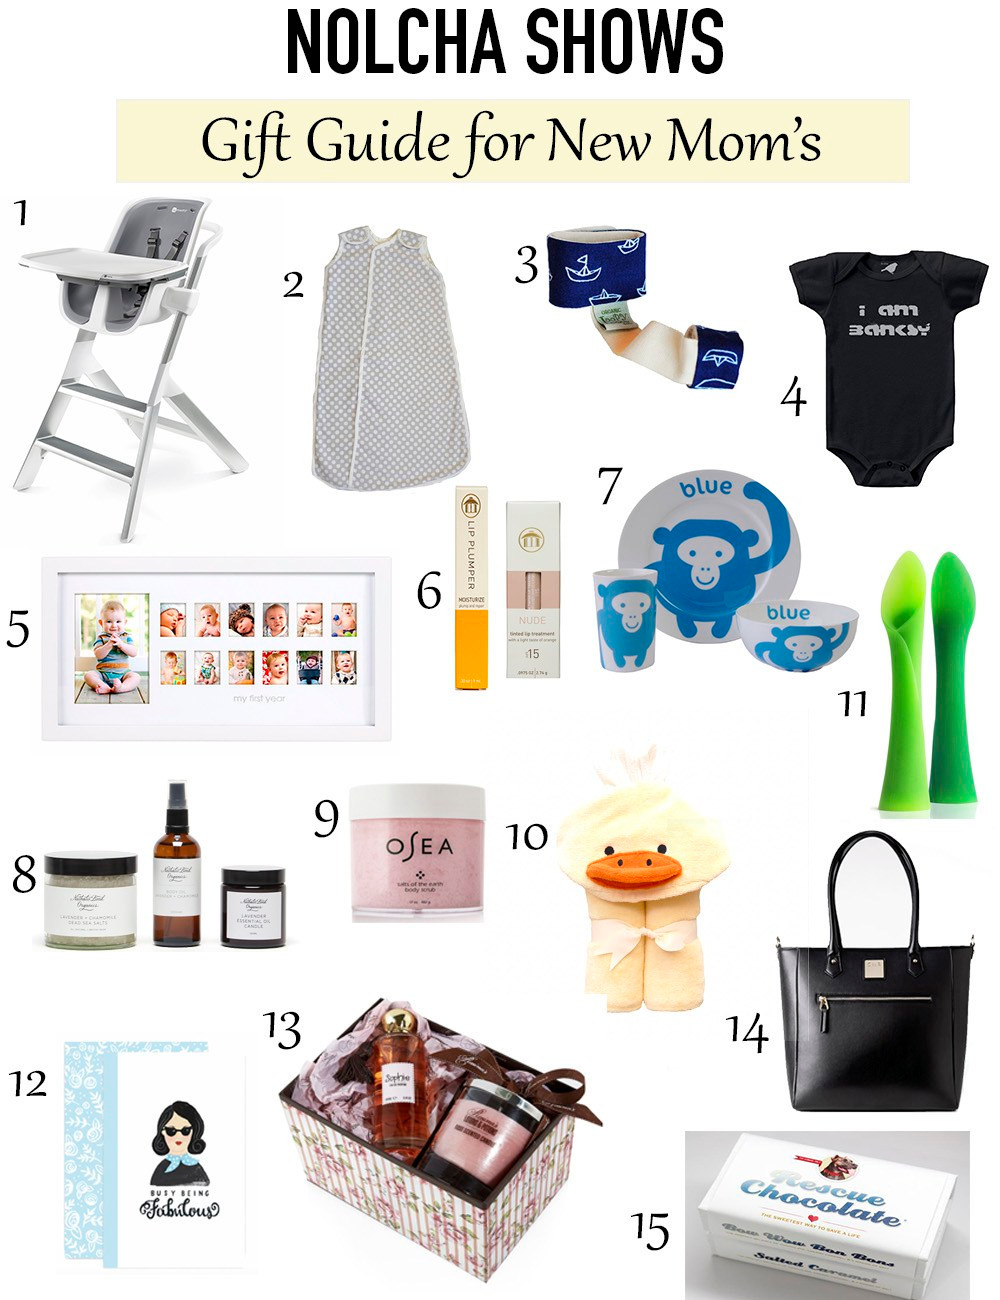 Nolcha Shows Gift Guide